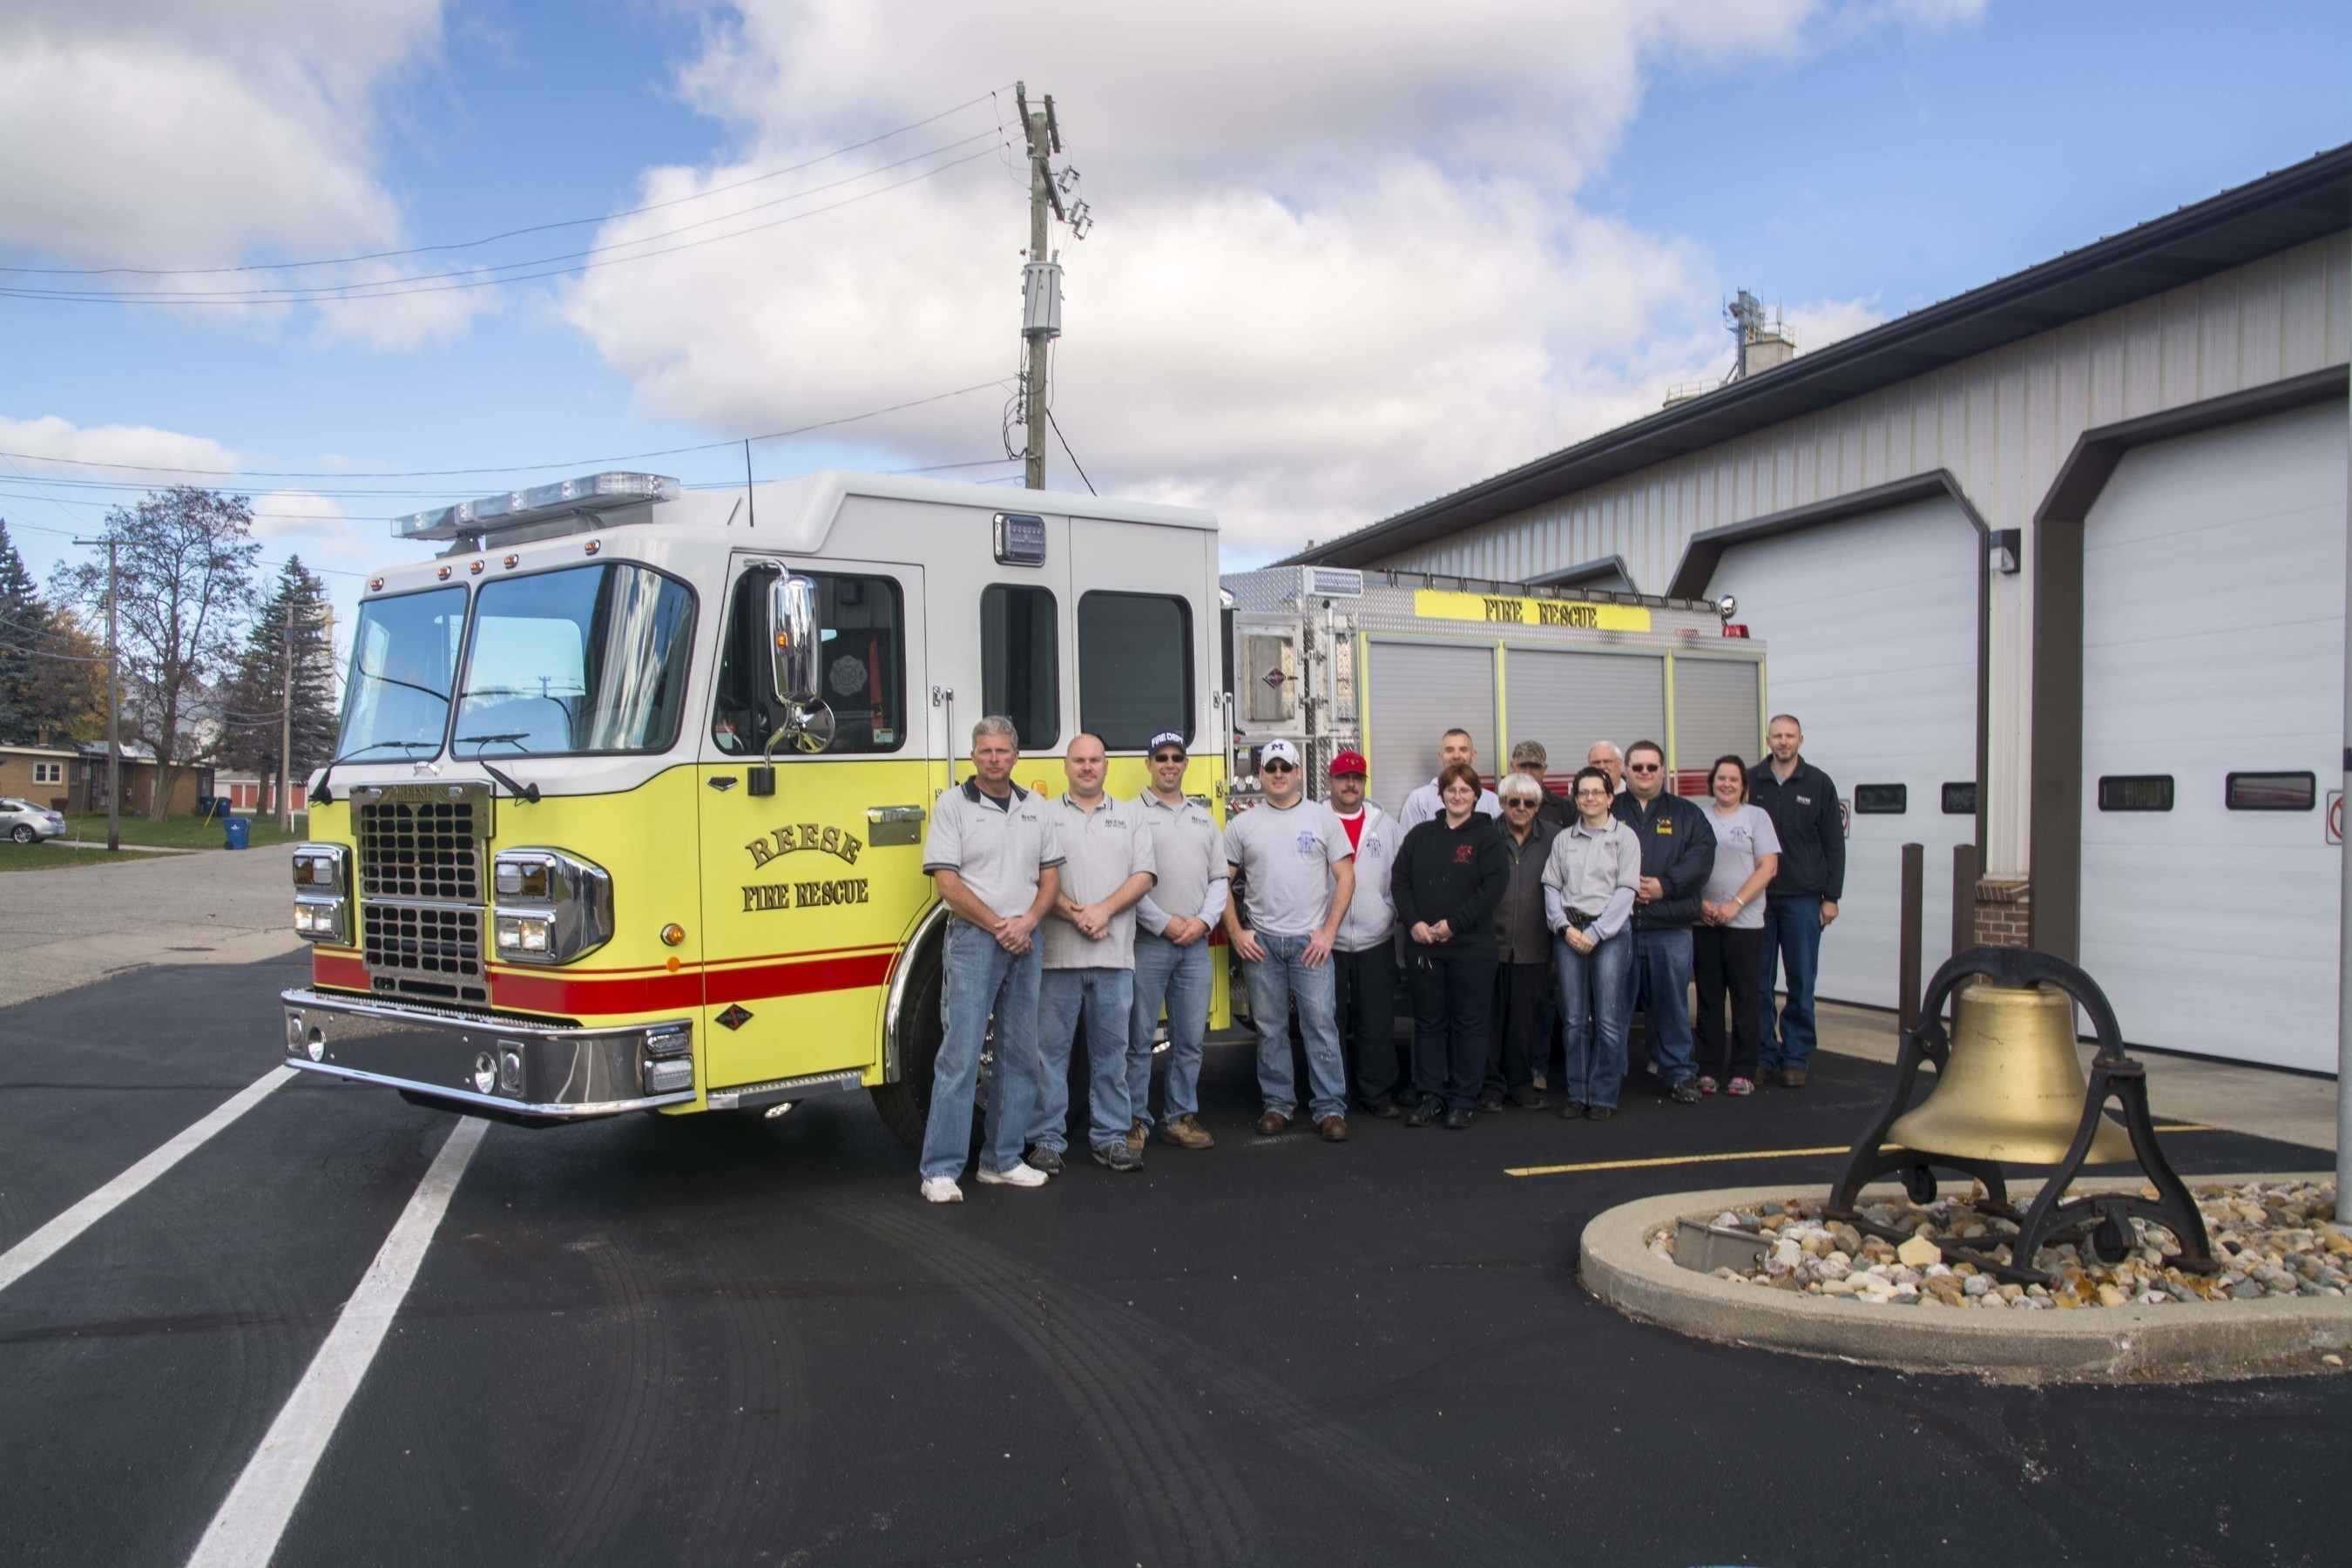 Reese Fire Department members gather around the S-180 Pumper, which represents a new era of access and availability for fire departments.